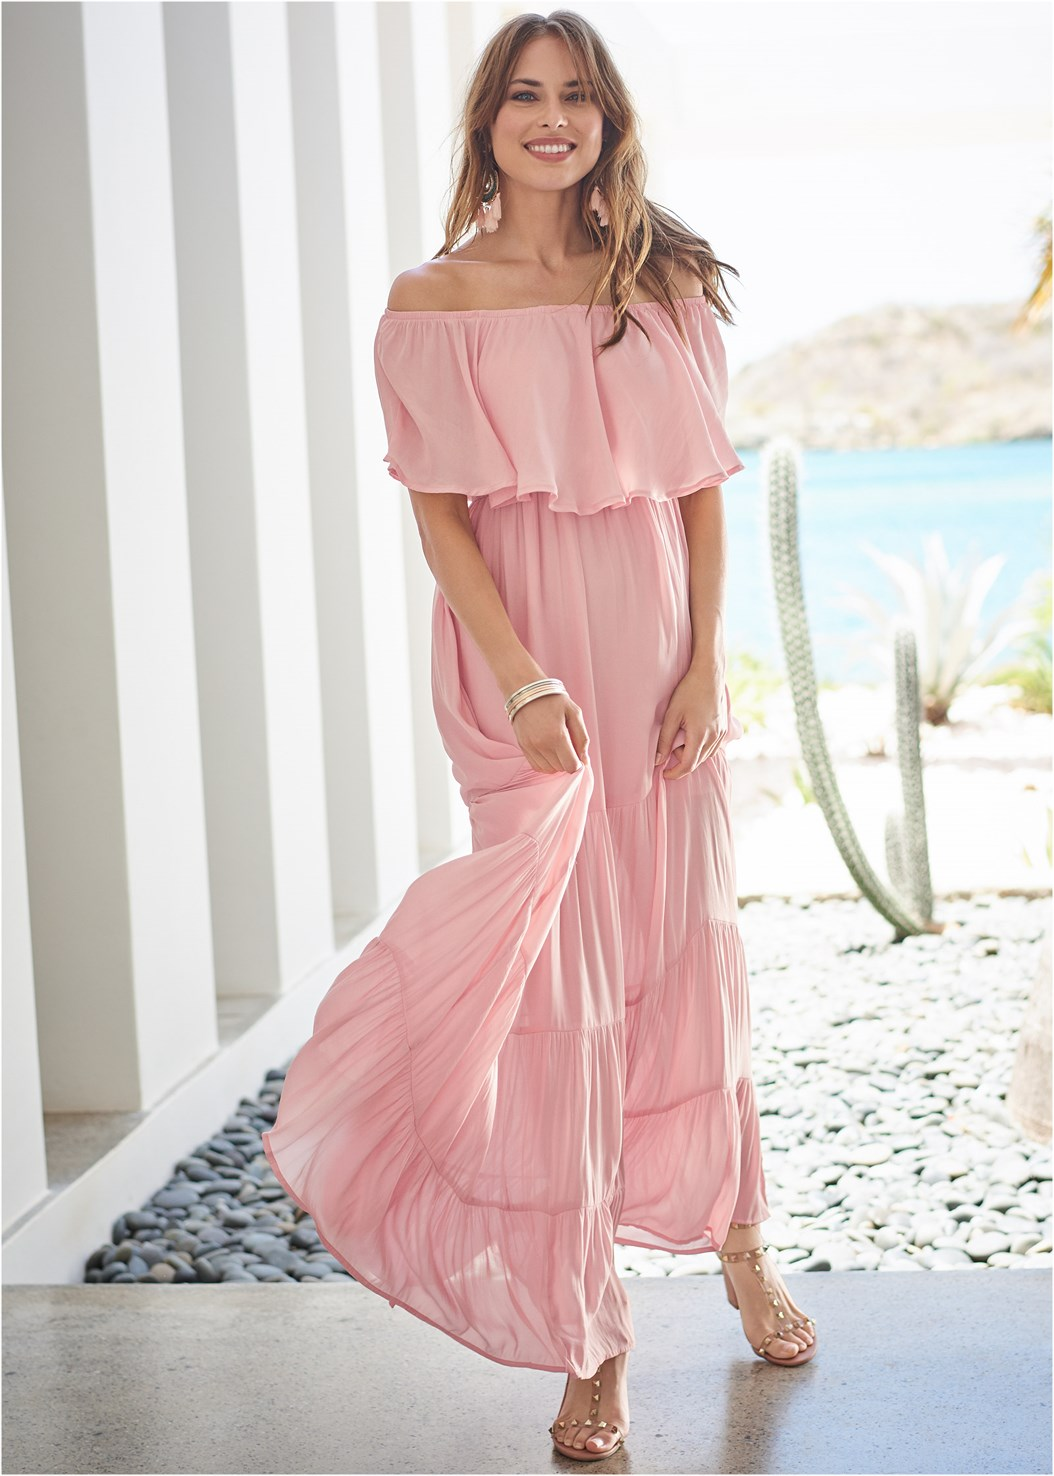 Tiered Maxi Dress,Everyday You Strapless Bra,Transparent Studded Heels,Studded Flip Flops,Chandelier Earrings